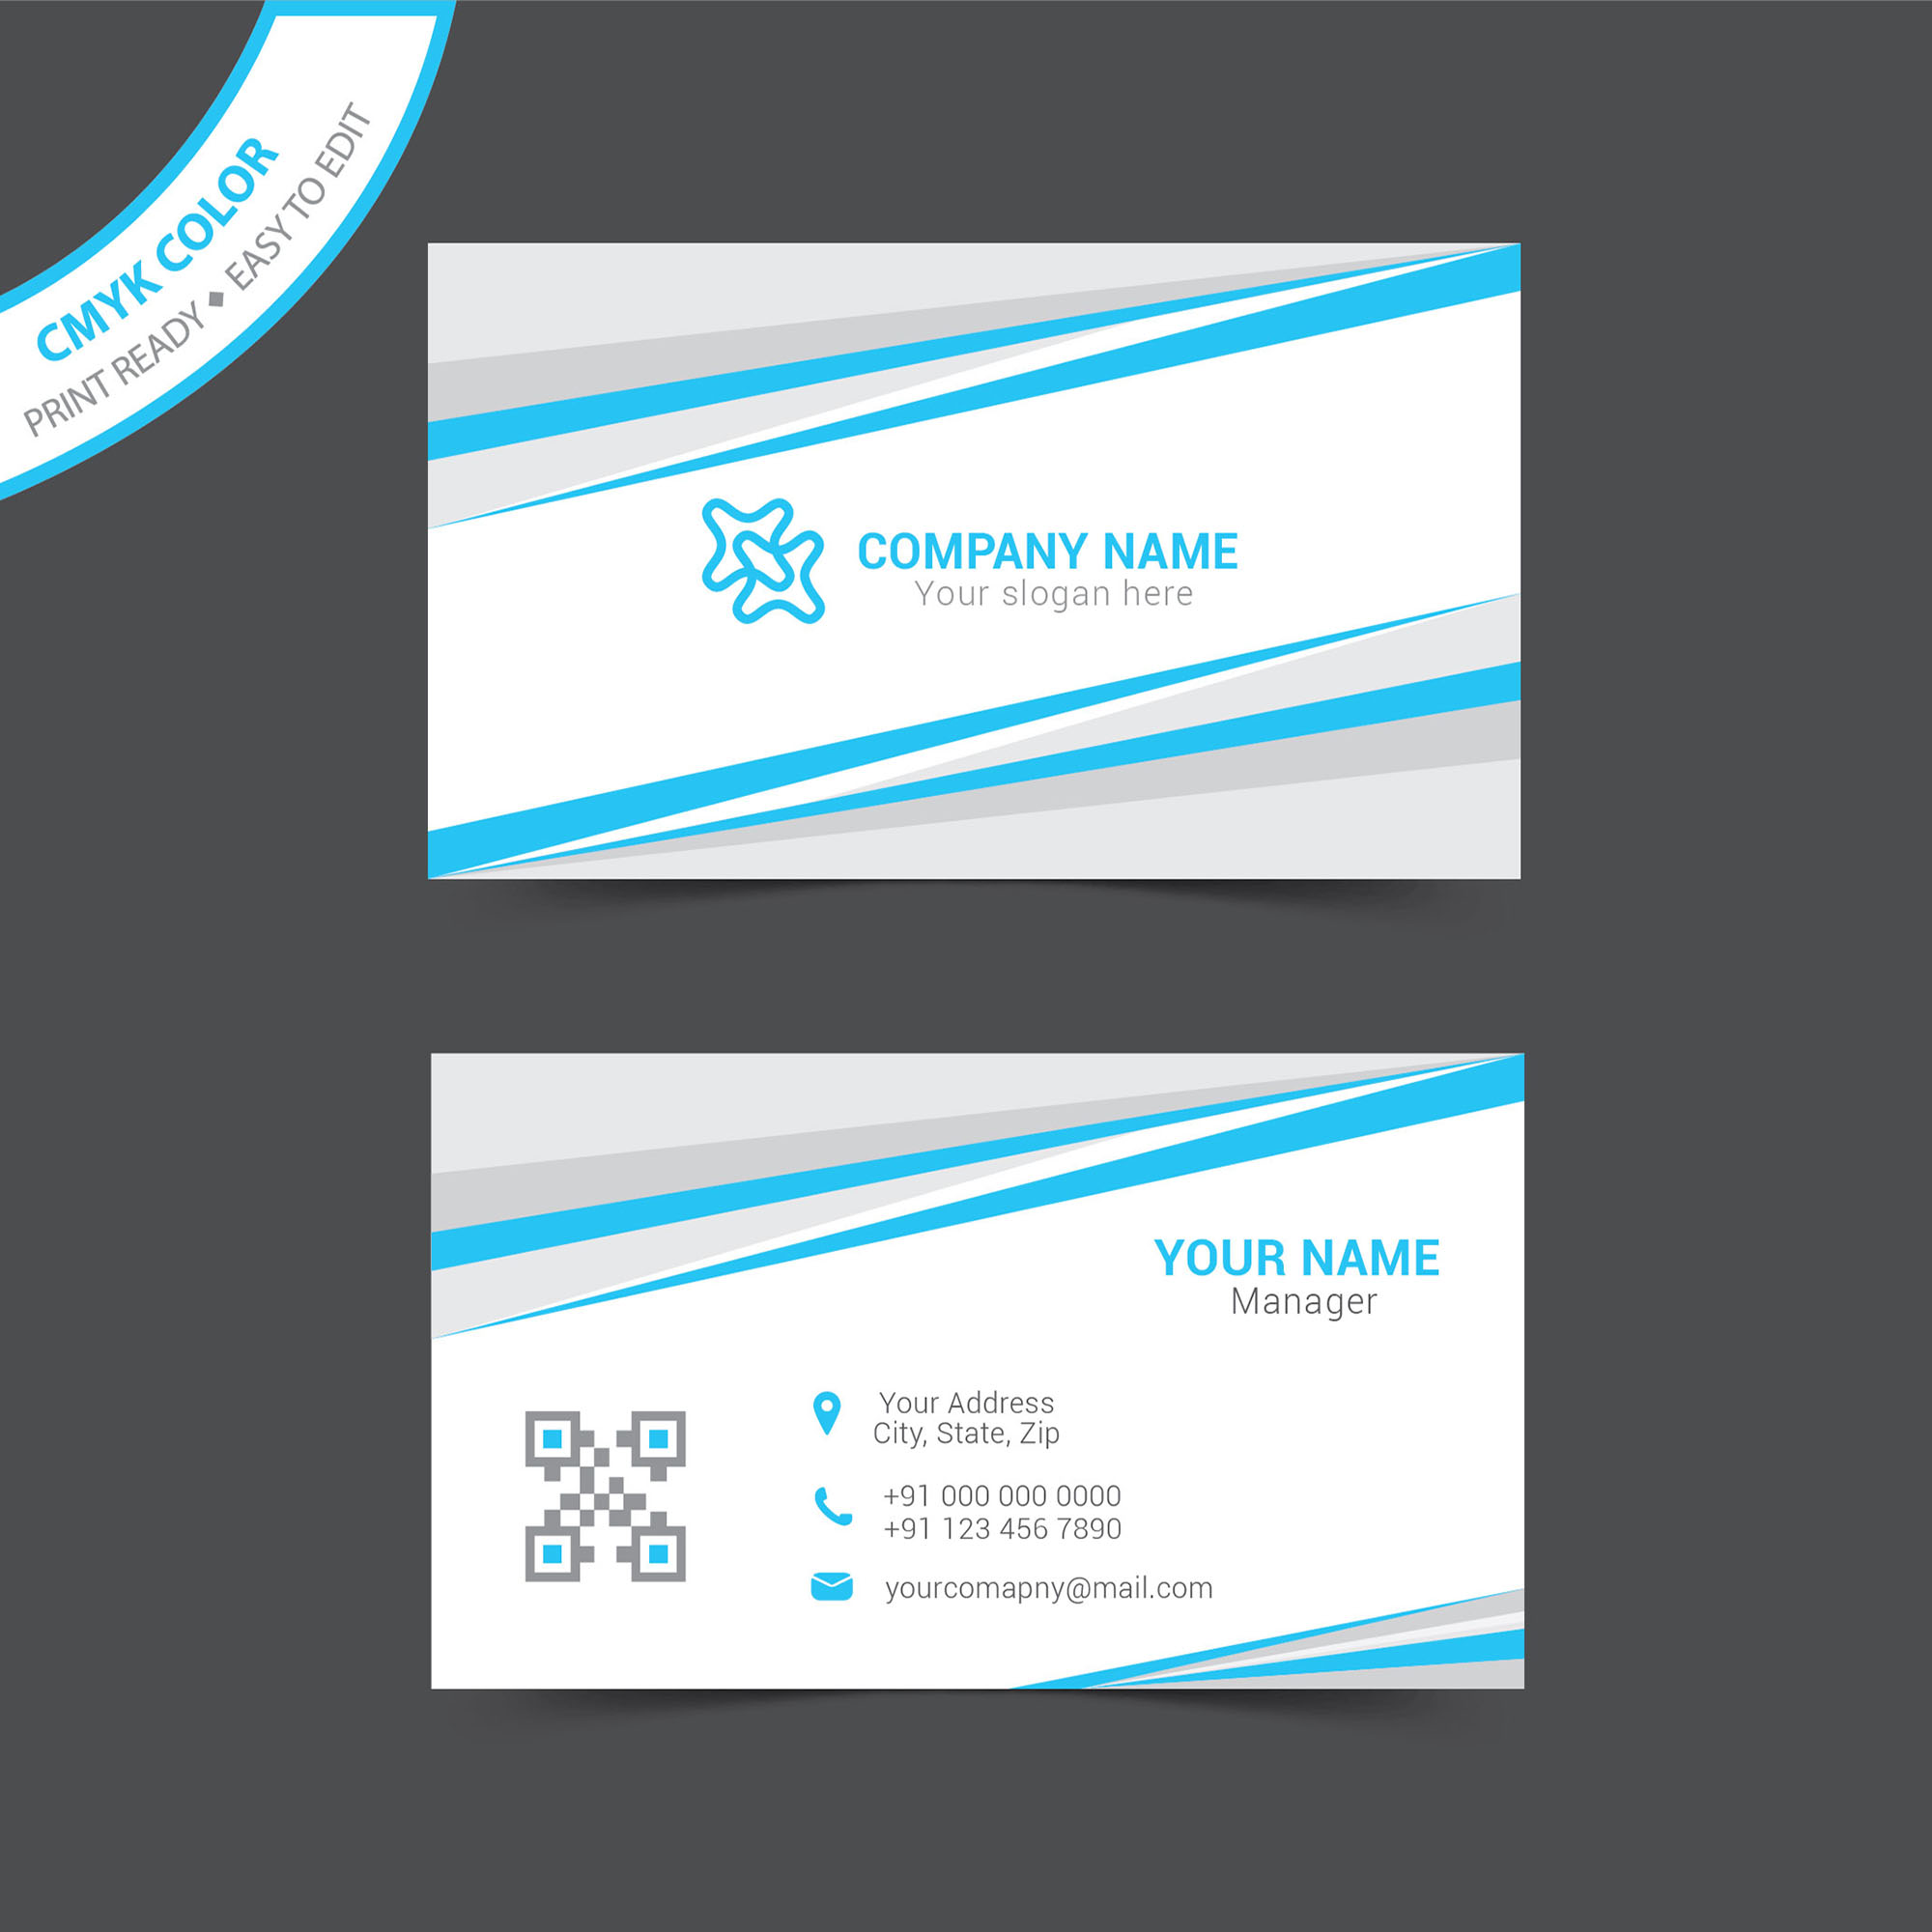 Simple business card template free download wisxi business card business cards business card design business card template design templates cheaphphosting Images